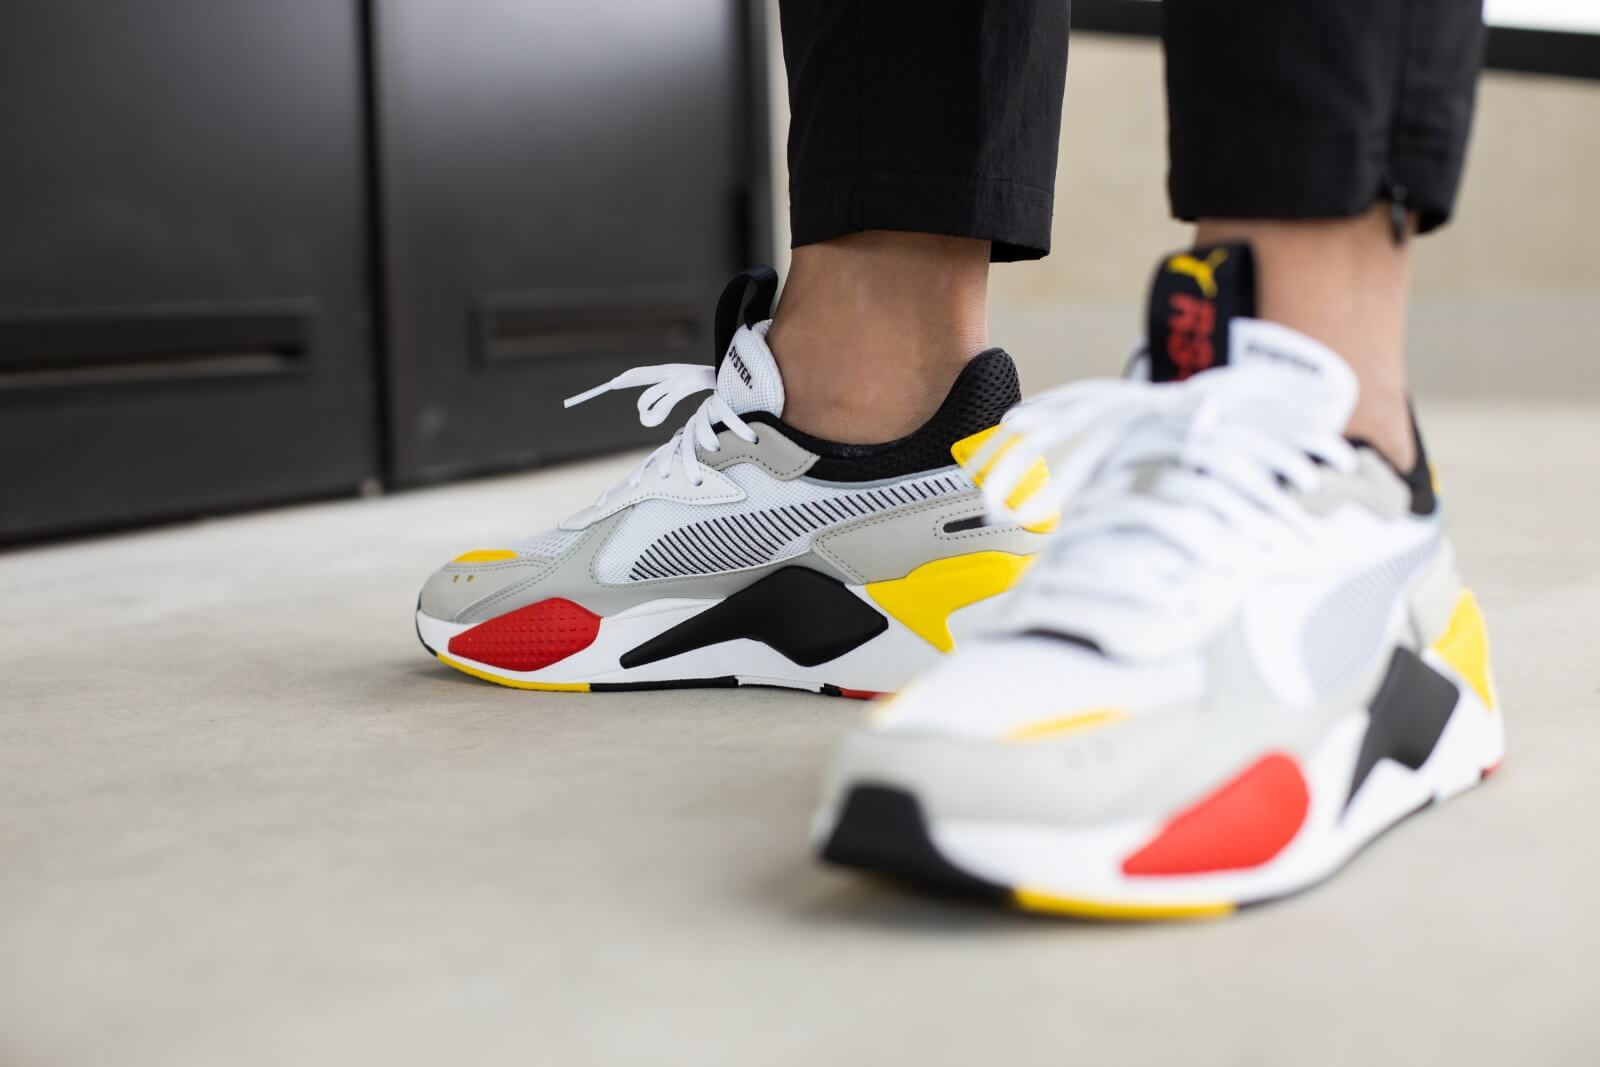 Puma RS-X Toys White/Black-Cyber Yellow - 369449-15